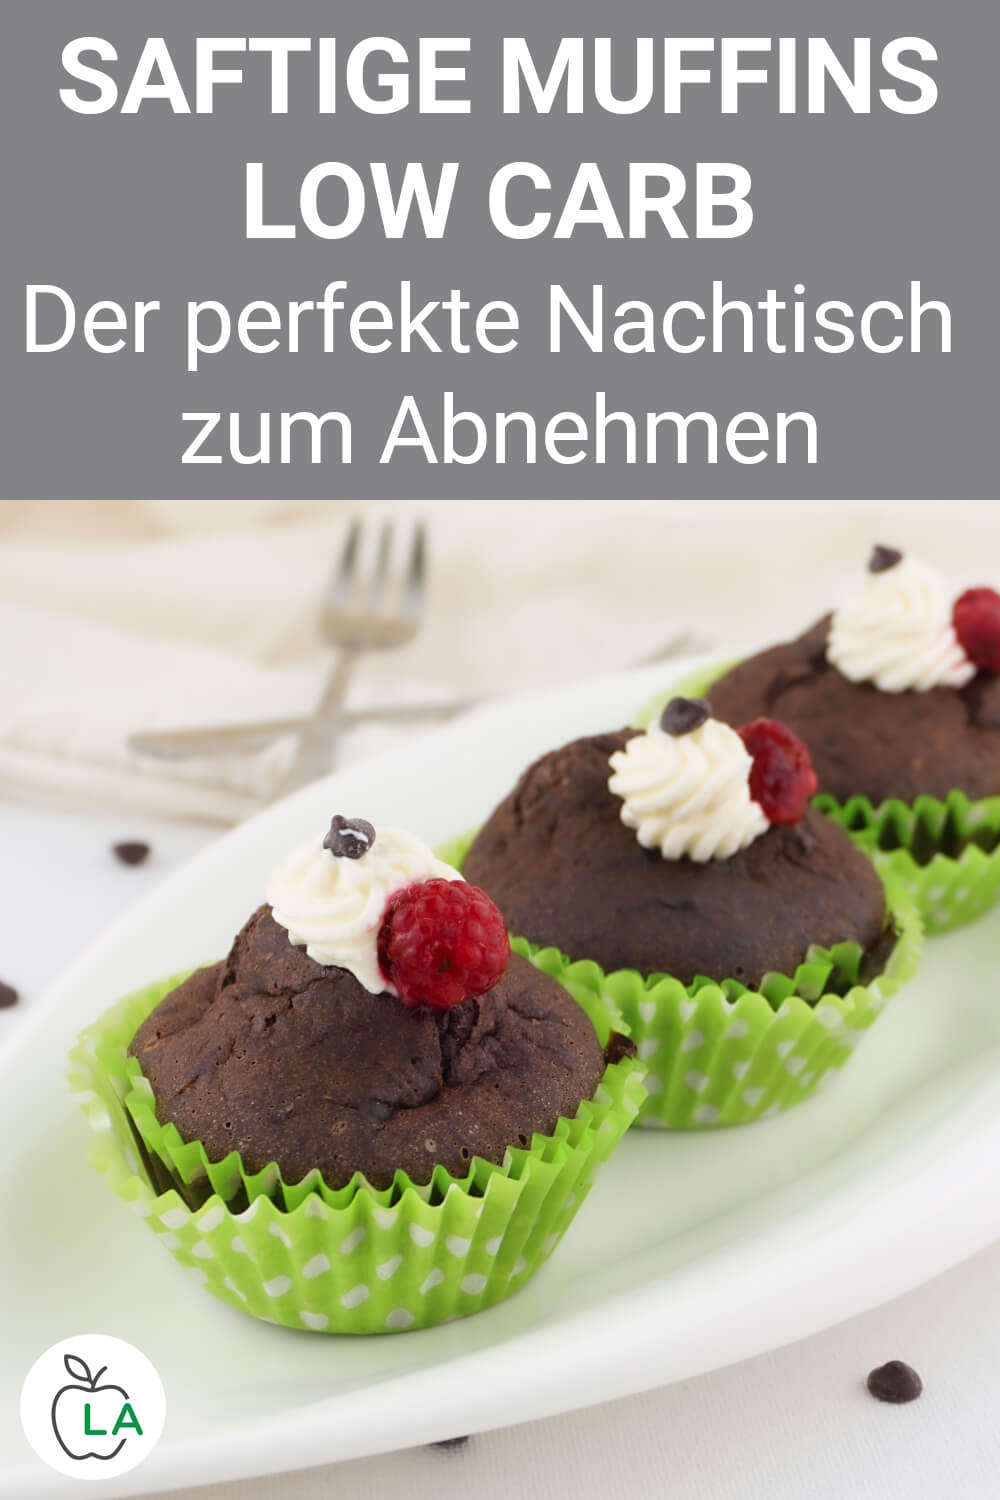 Low Carb Muffins ohne Mehl